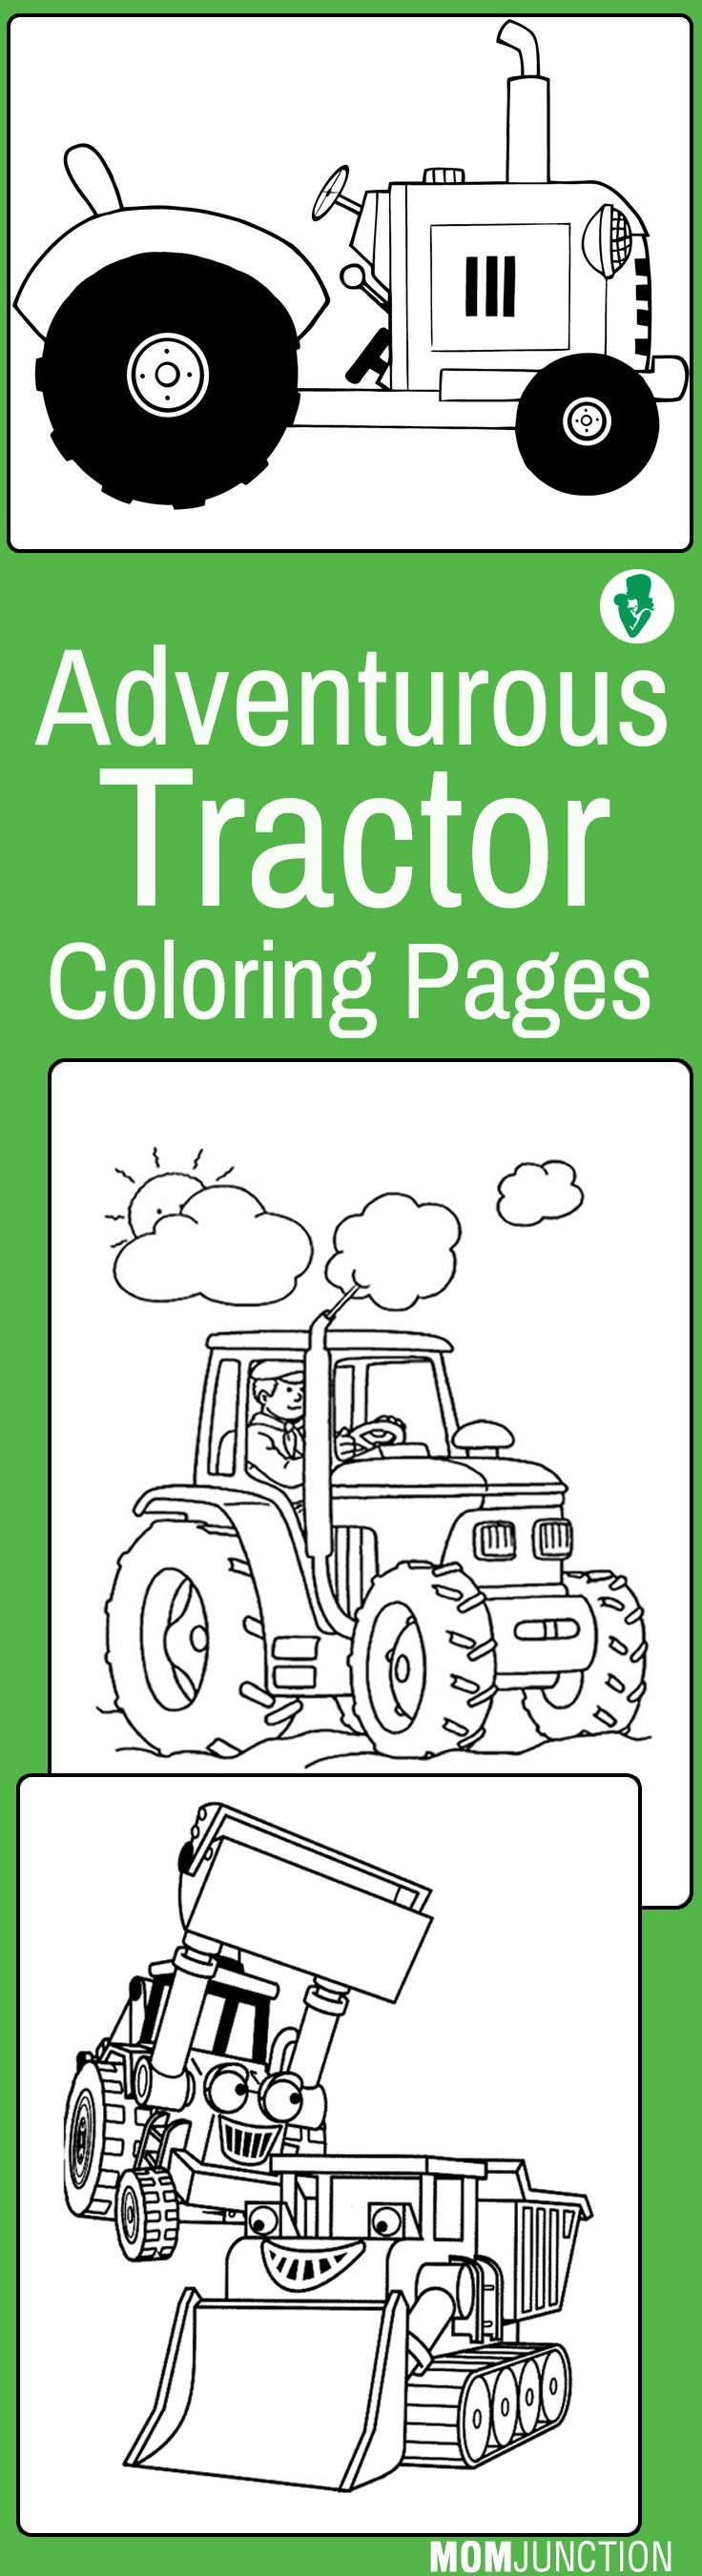 Top 10 Farm Coloring Pages Your Toddler Will Love To Color | Farming ...